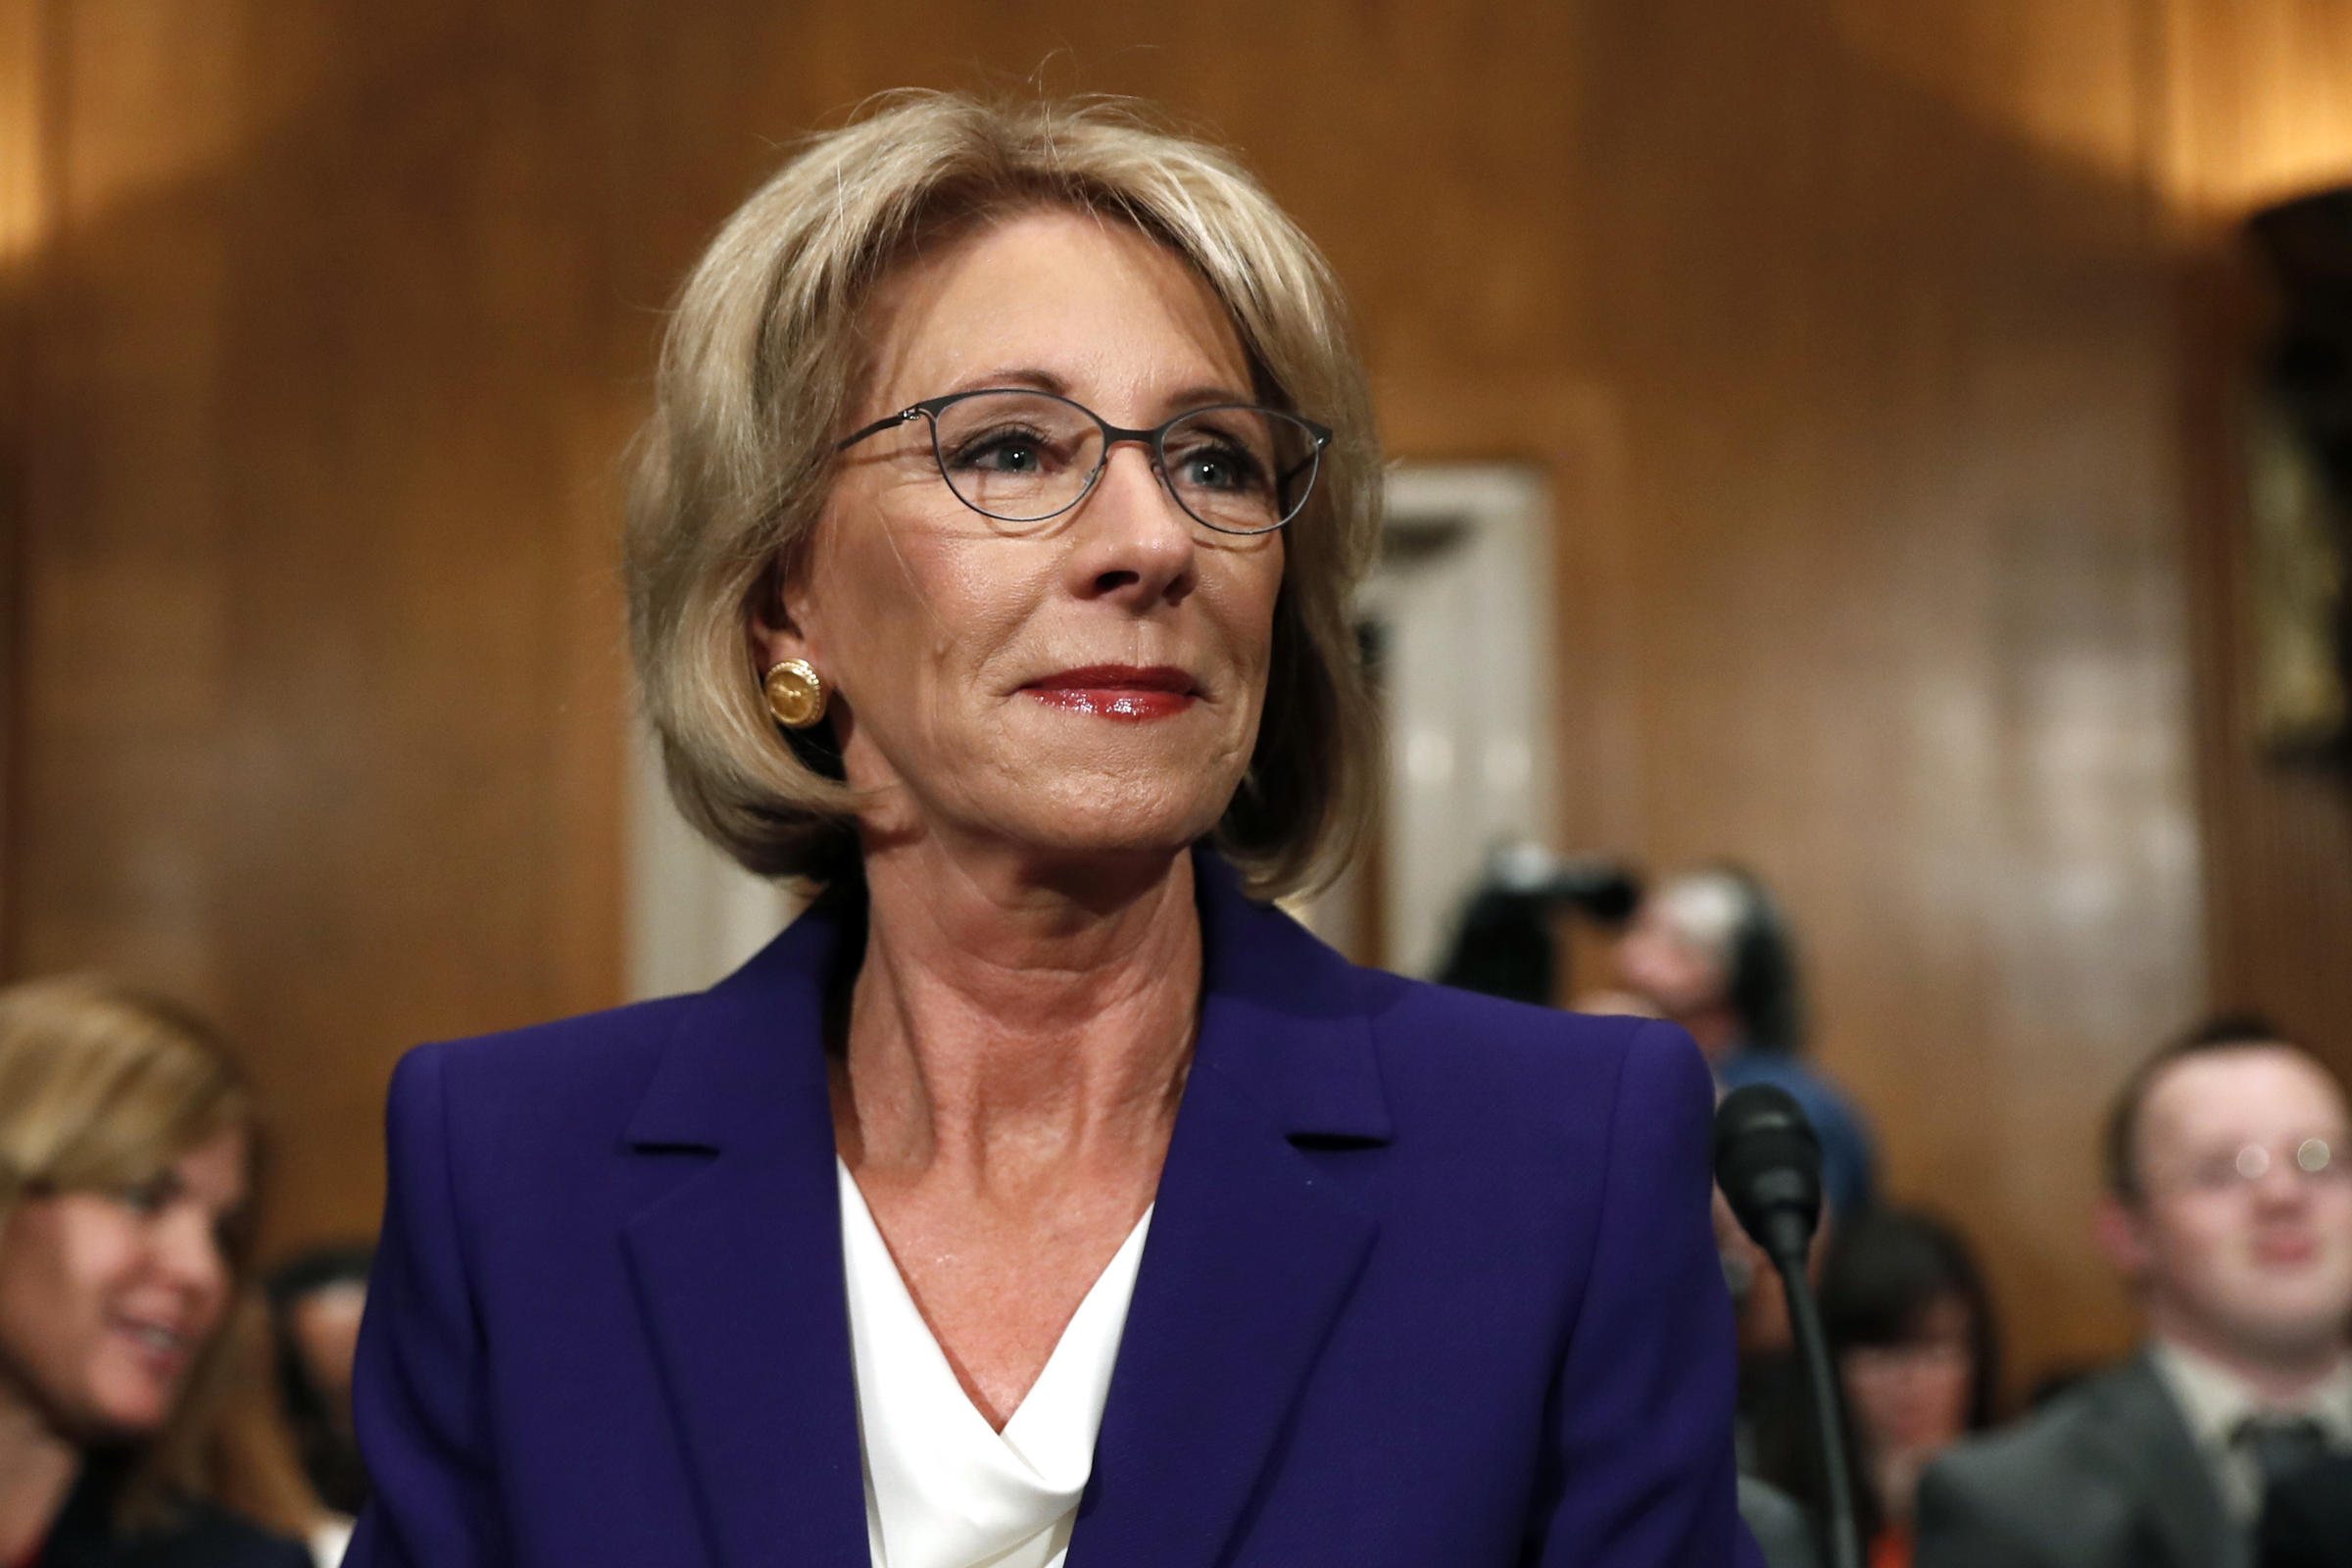 Image result for U.S. Secretary of Education Betsy DeVos: President Right to Call for Expanded Education Freedom